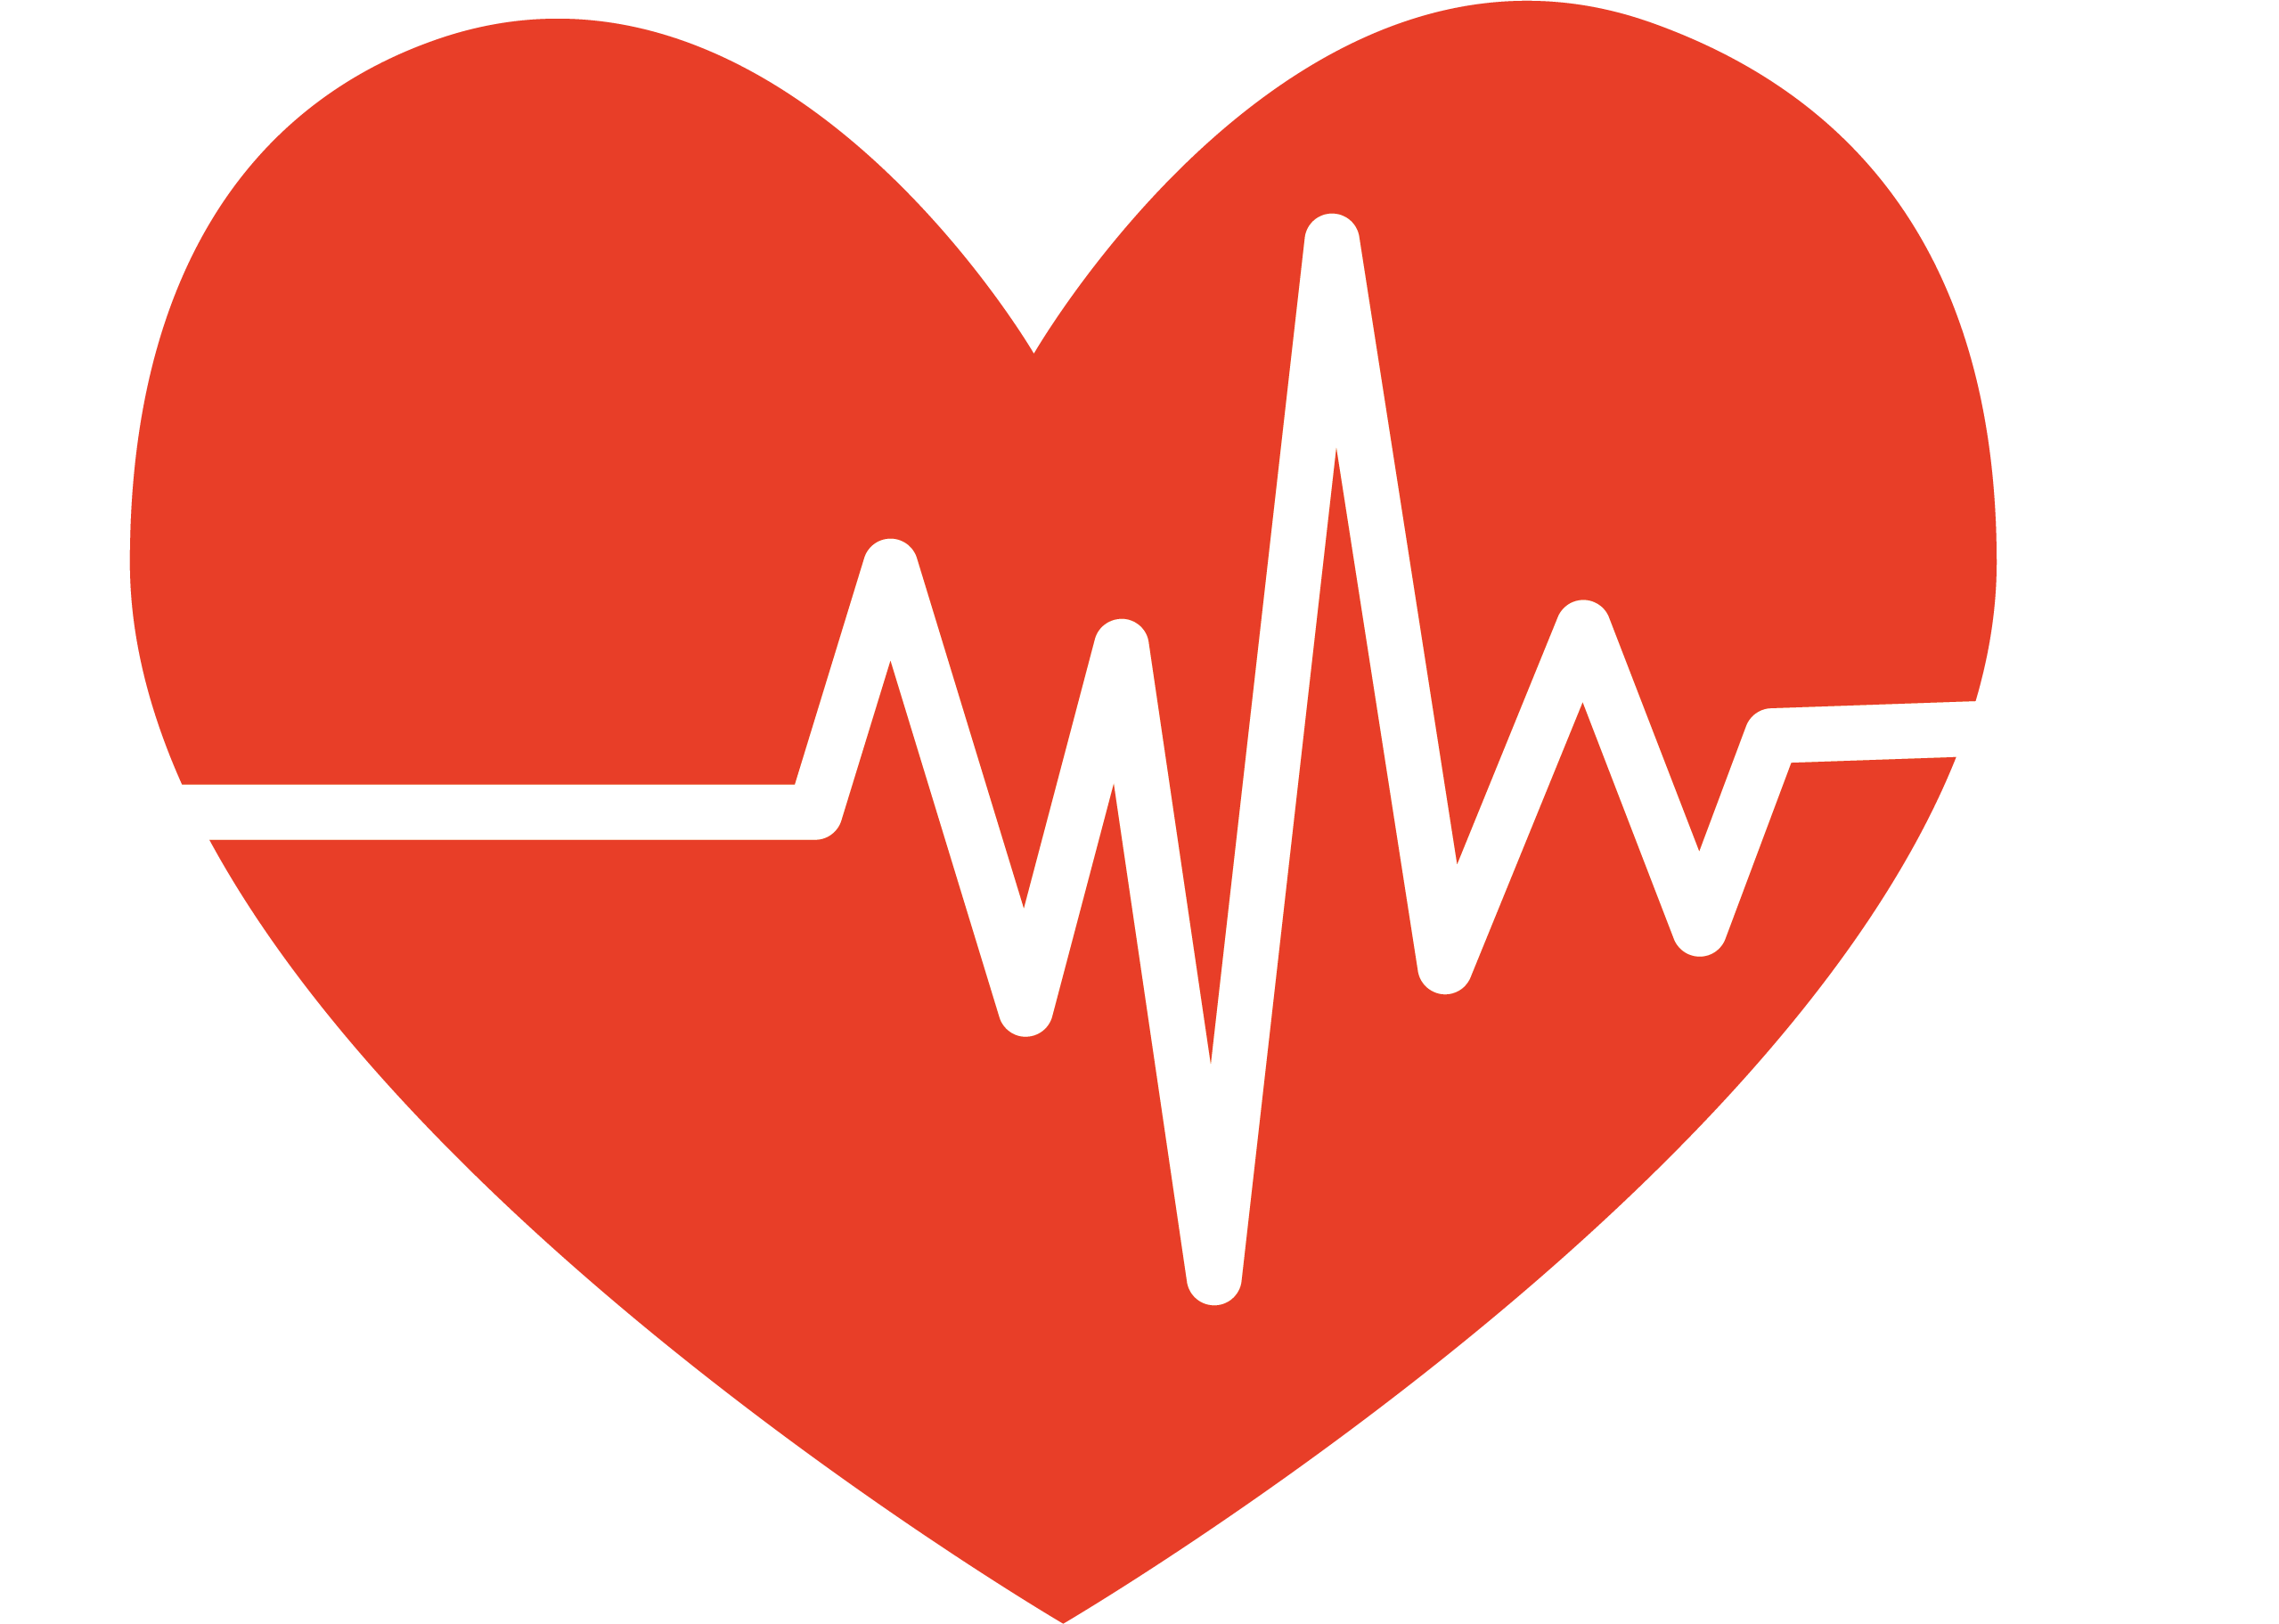 Heartbeat png red. Heart electrocardiography pulse cartoon